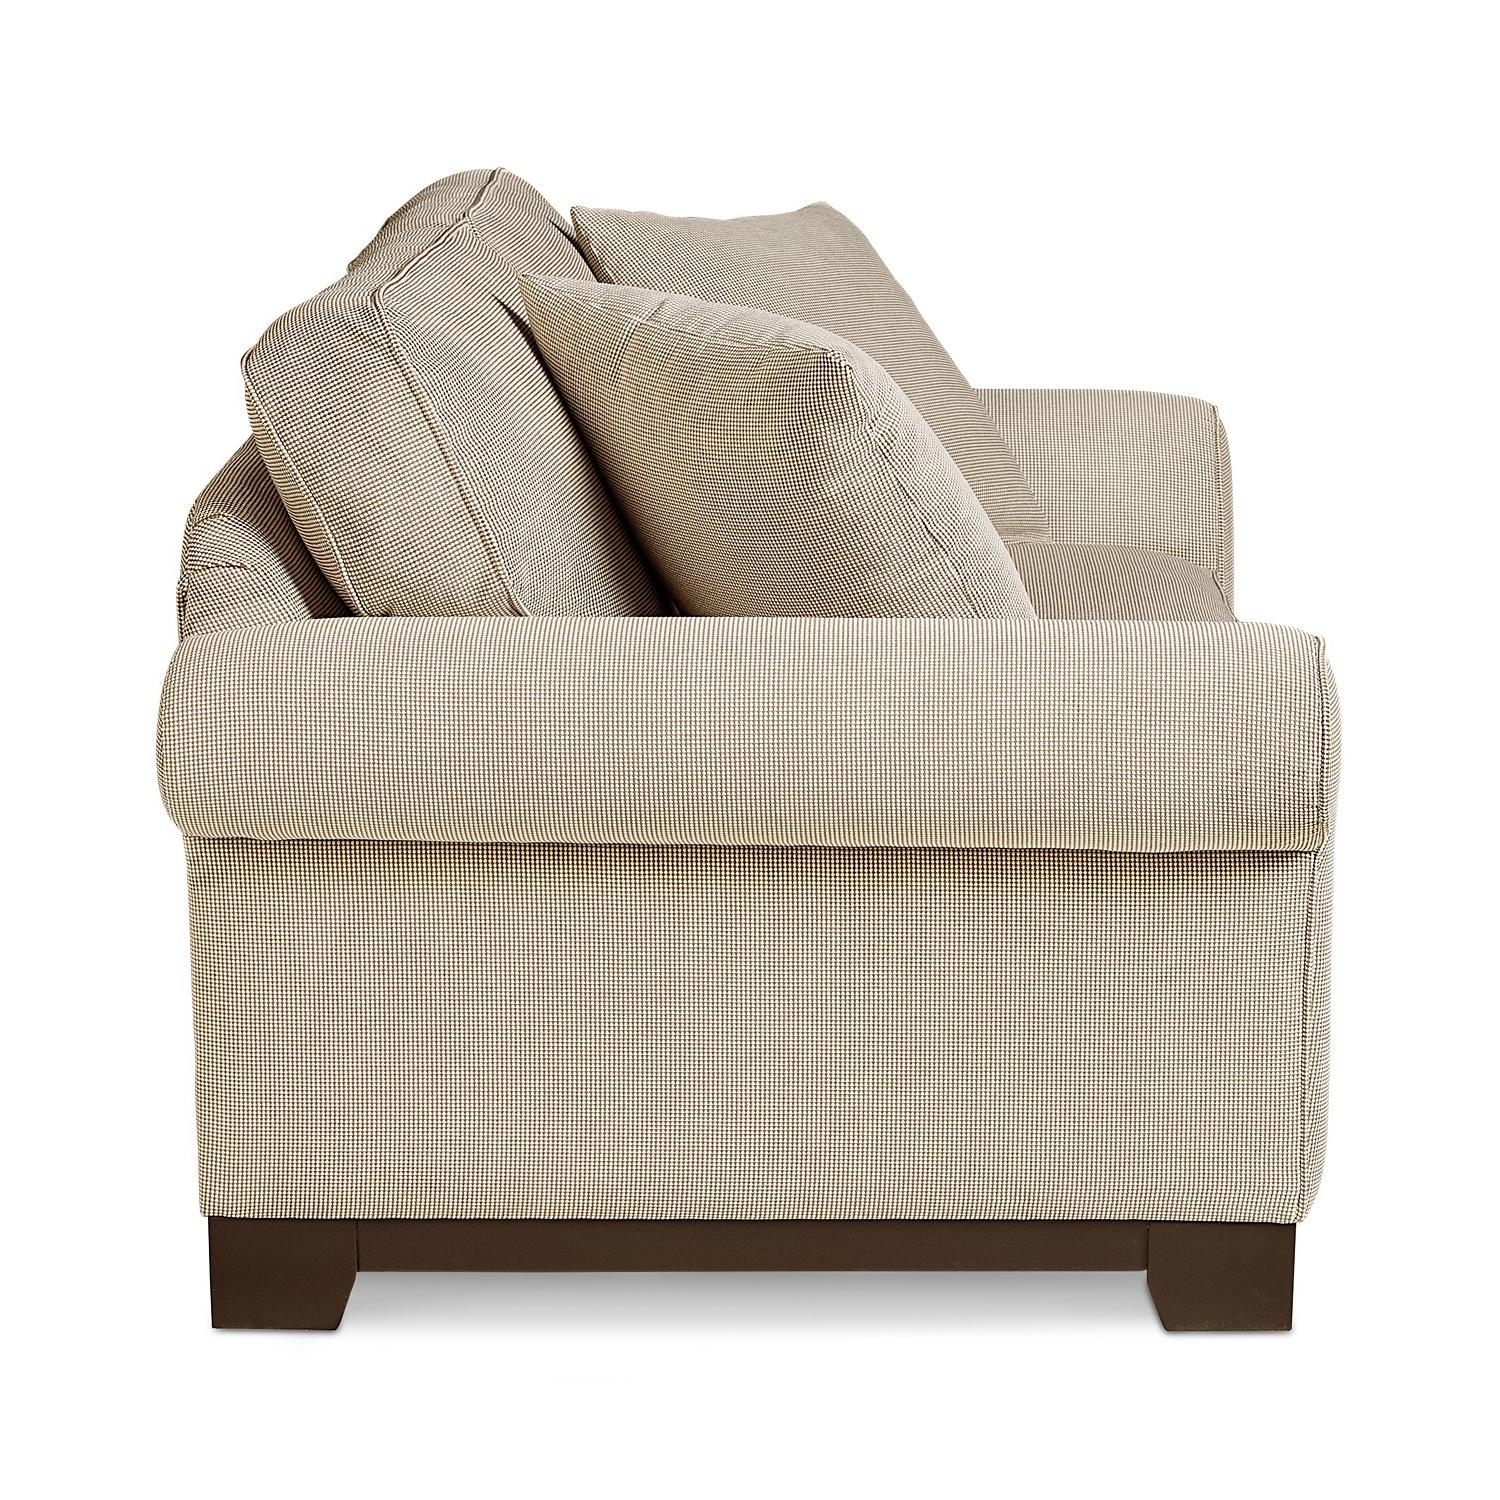 Macy's Medland Fabric Roll Arm Loveseat w/ 2 Pillows - image-2